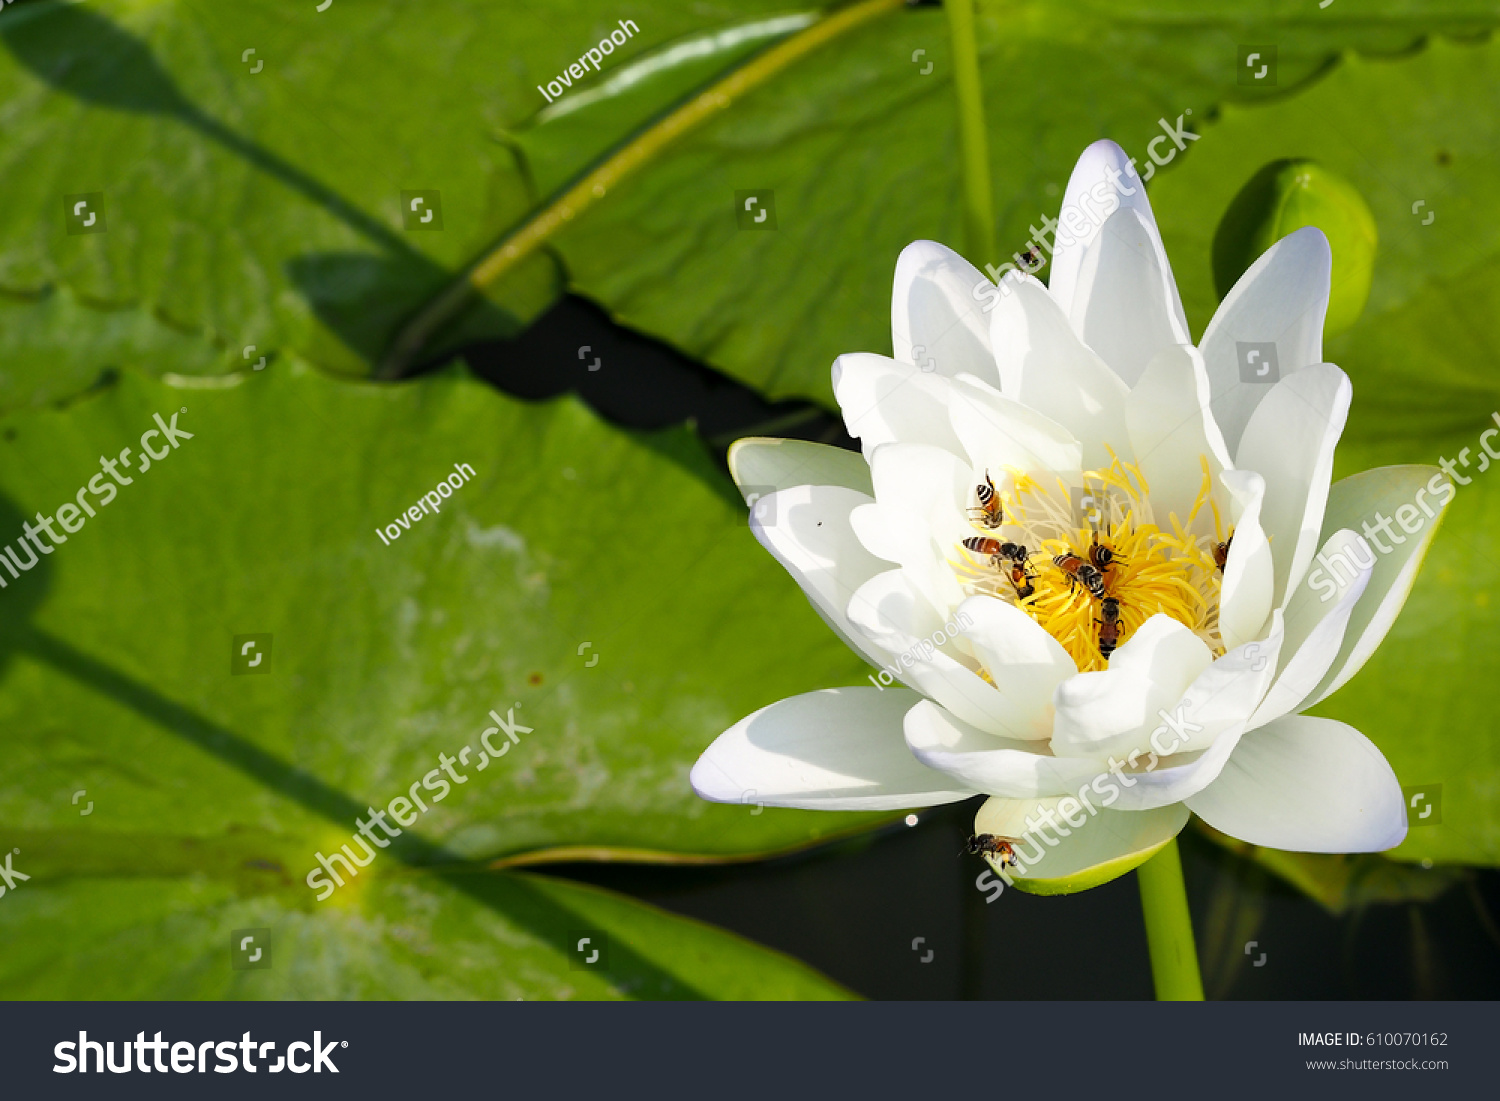 White lotus flower on lakeclose beautiful stock photo royalty free white lotus flower on the lakeclose up beautiful lotus and bees nature wallpaper izmirmasajfo Image collections